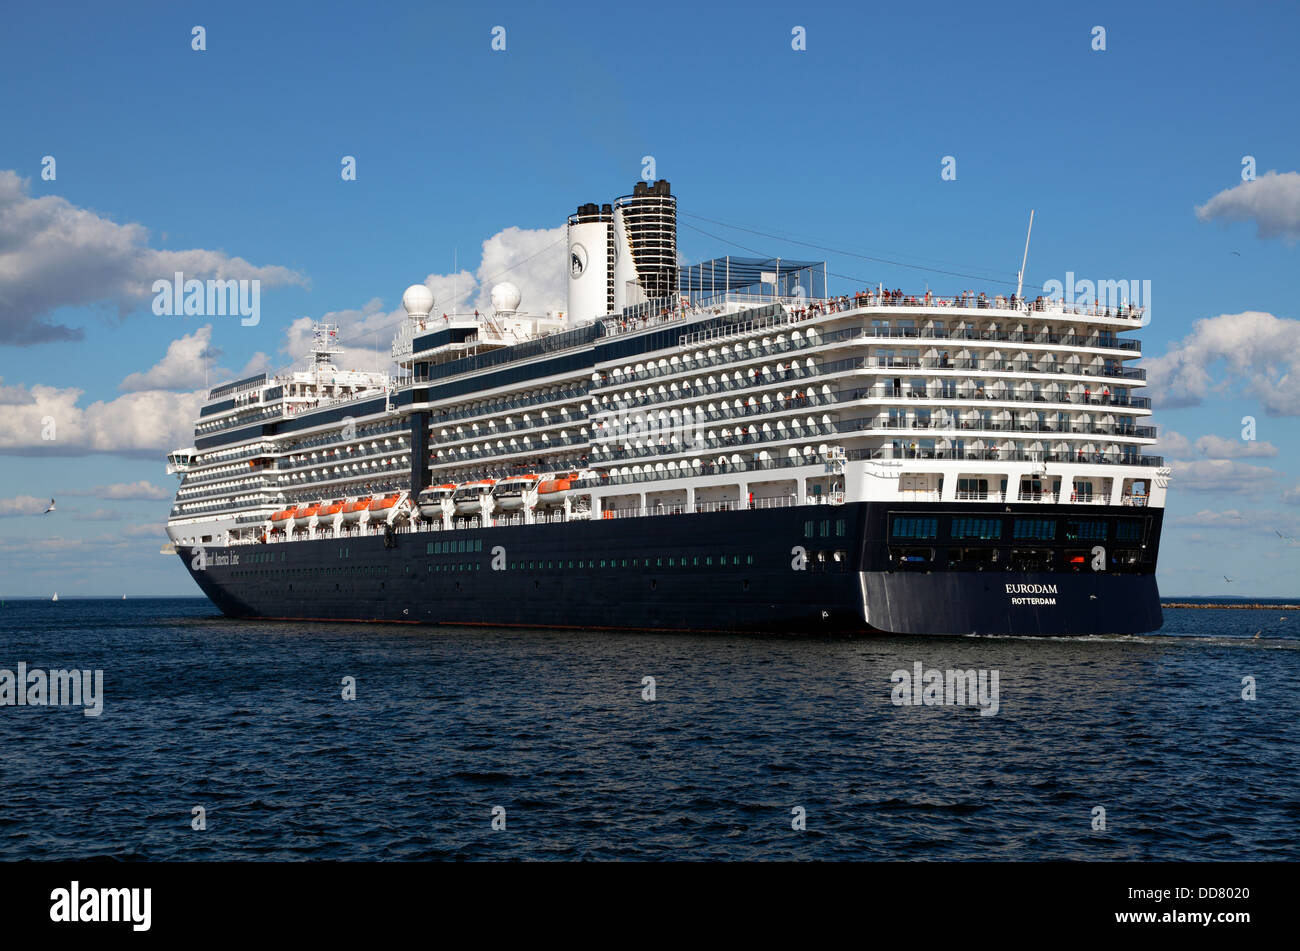 Stern of the cruise ship MS Eurodam from Holland America Line leaves the port of Copenhagen, Denmark - Stock Image